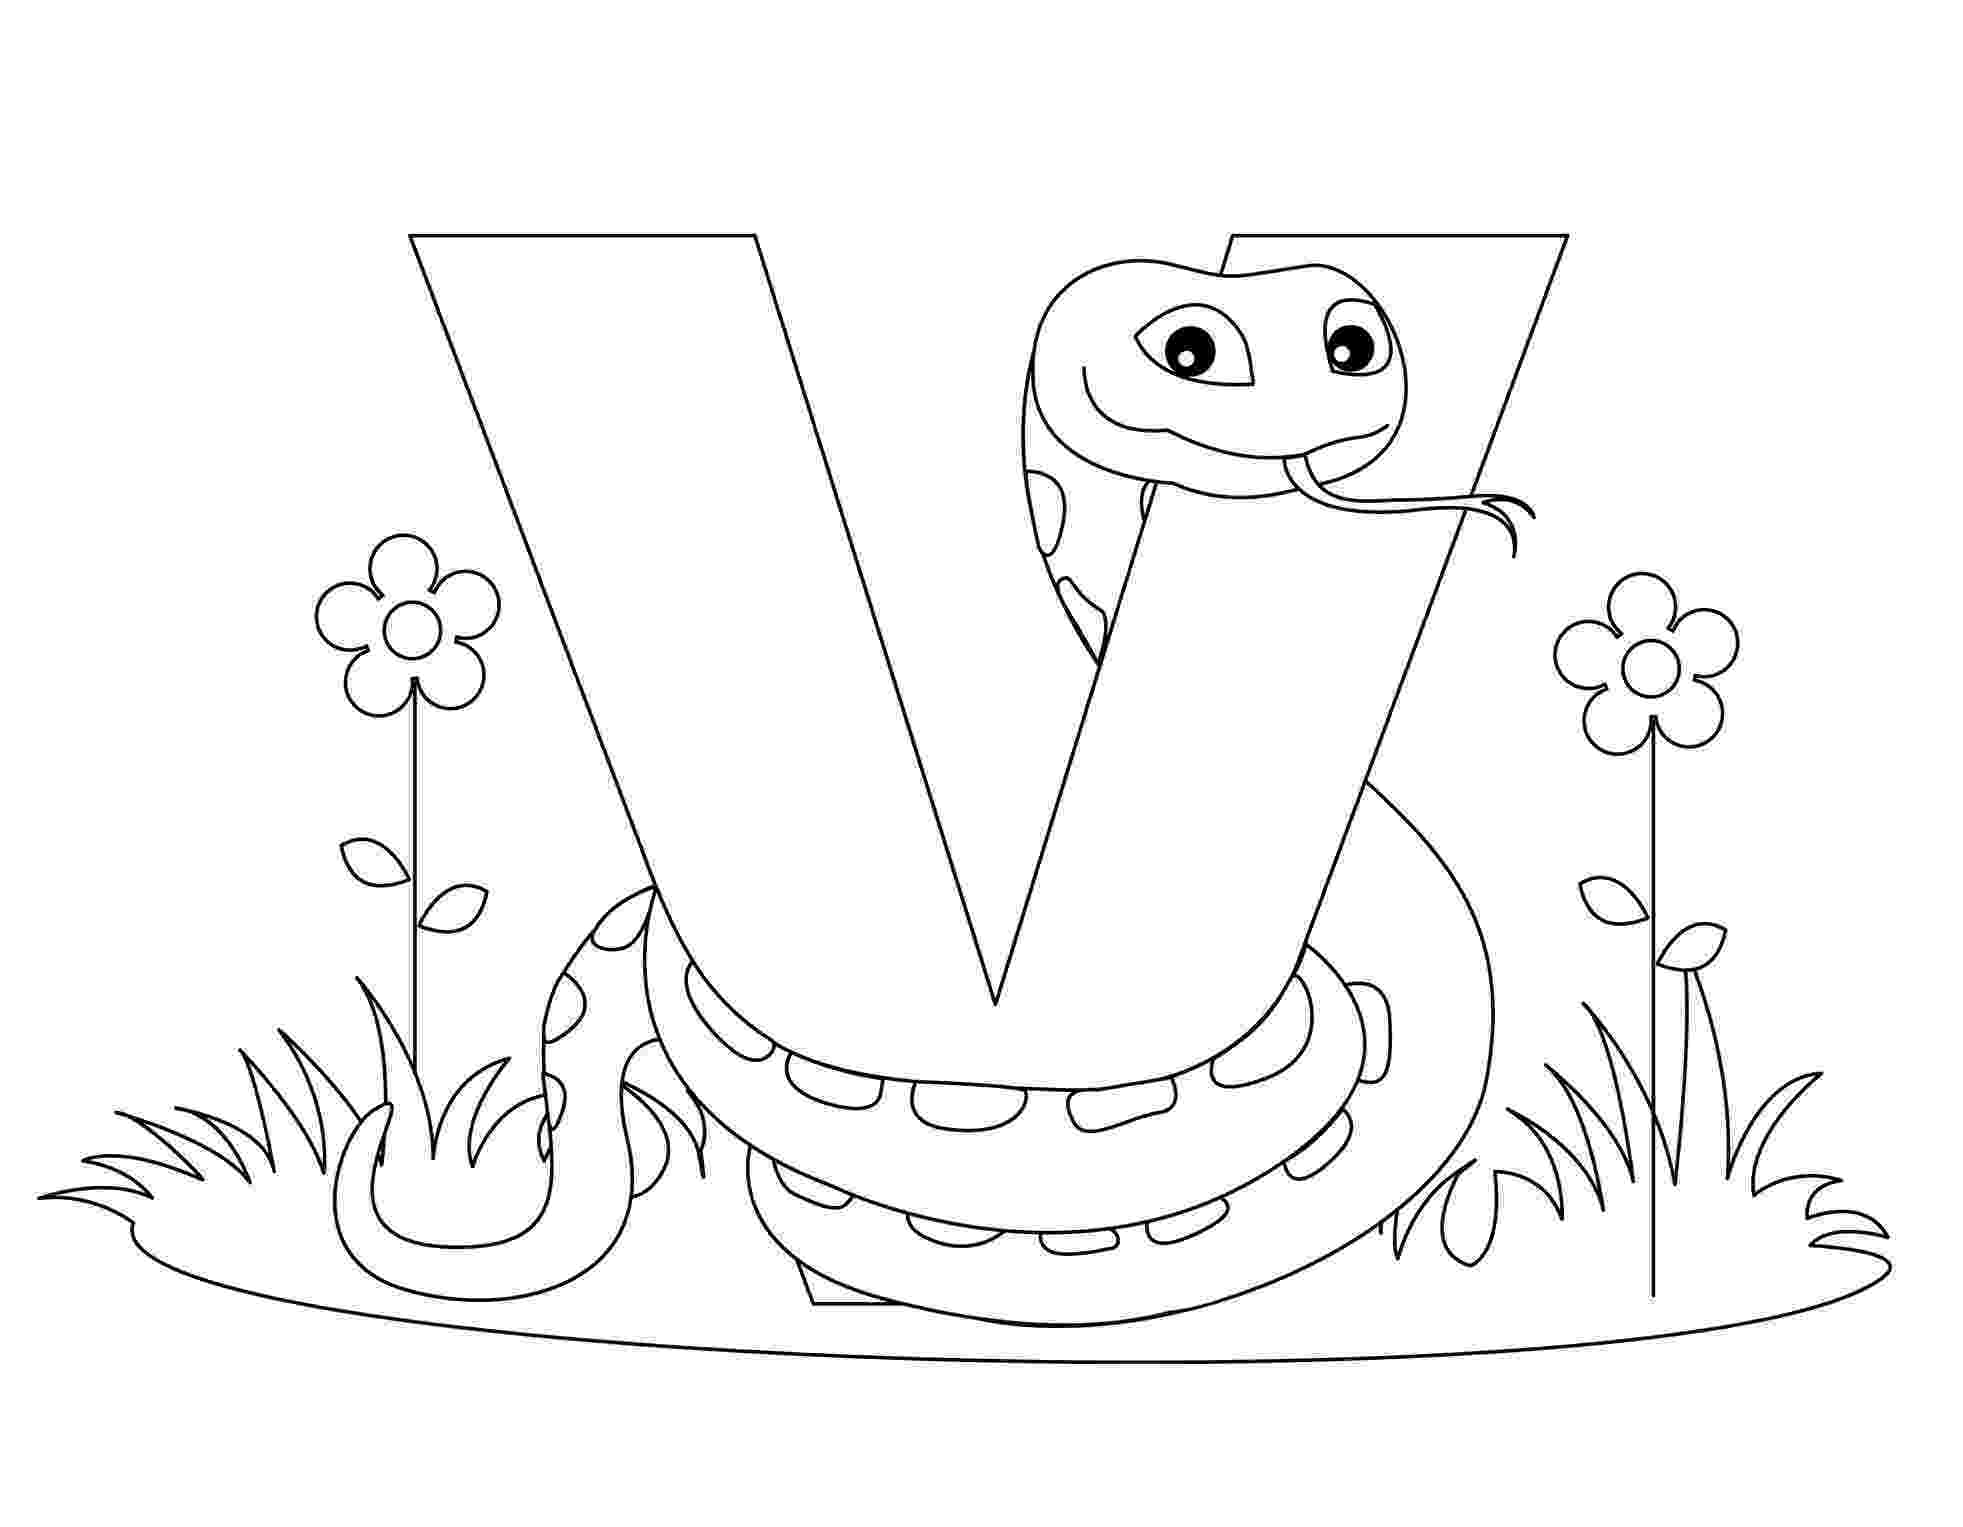 v coloring page things that start with v free printable coloring pages page v coloring